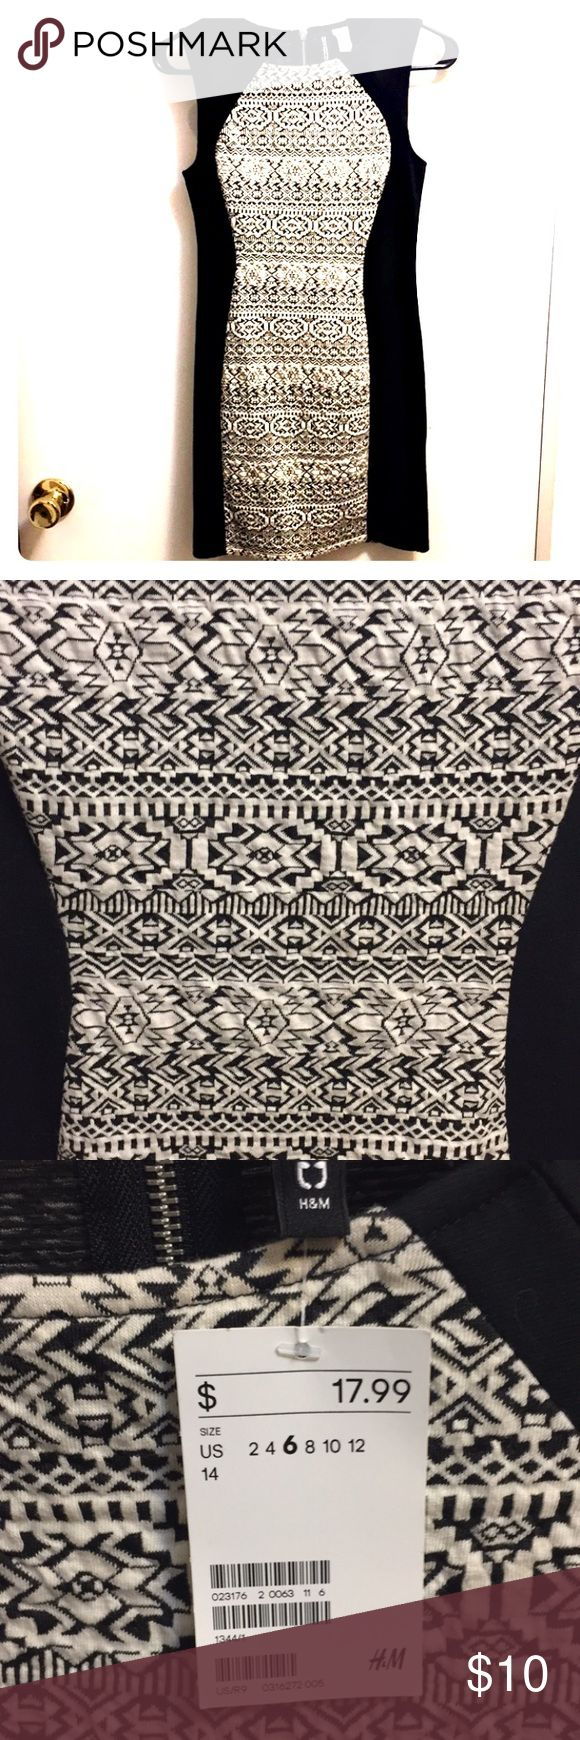 H&M Black and White Mini Dress H&M Black and White Mini Dress. Tribal pattern, color blocking to appear slimmer. Stretchy fabric, new with tags. H&M Dresses Mini